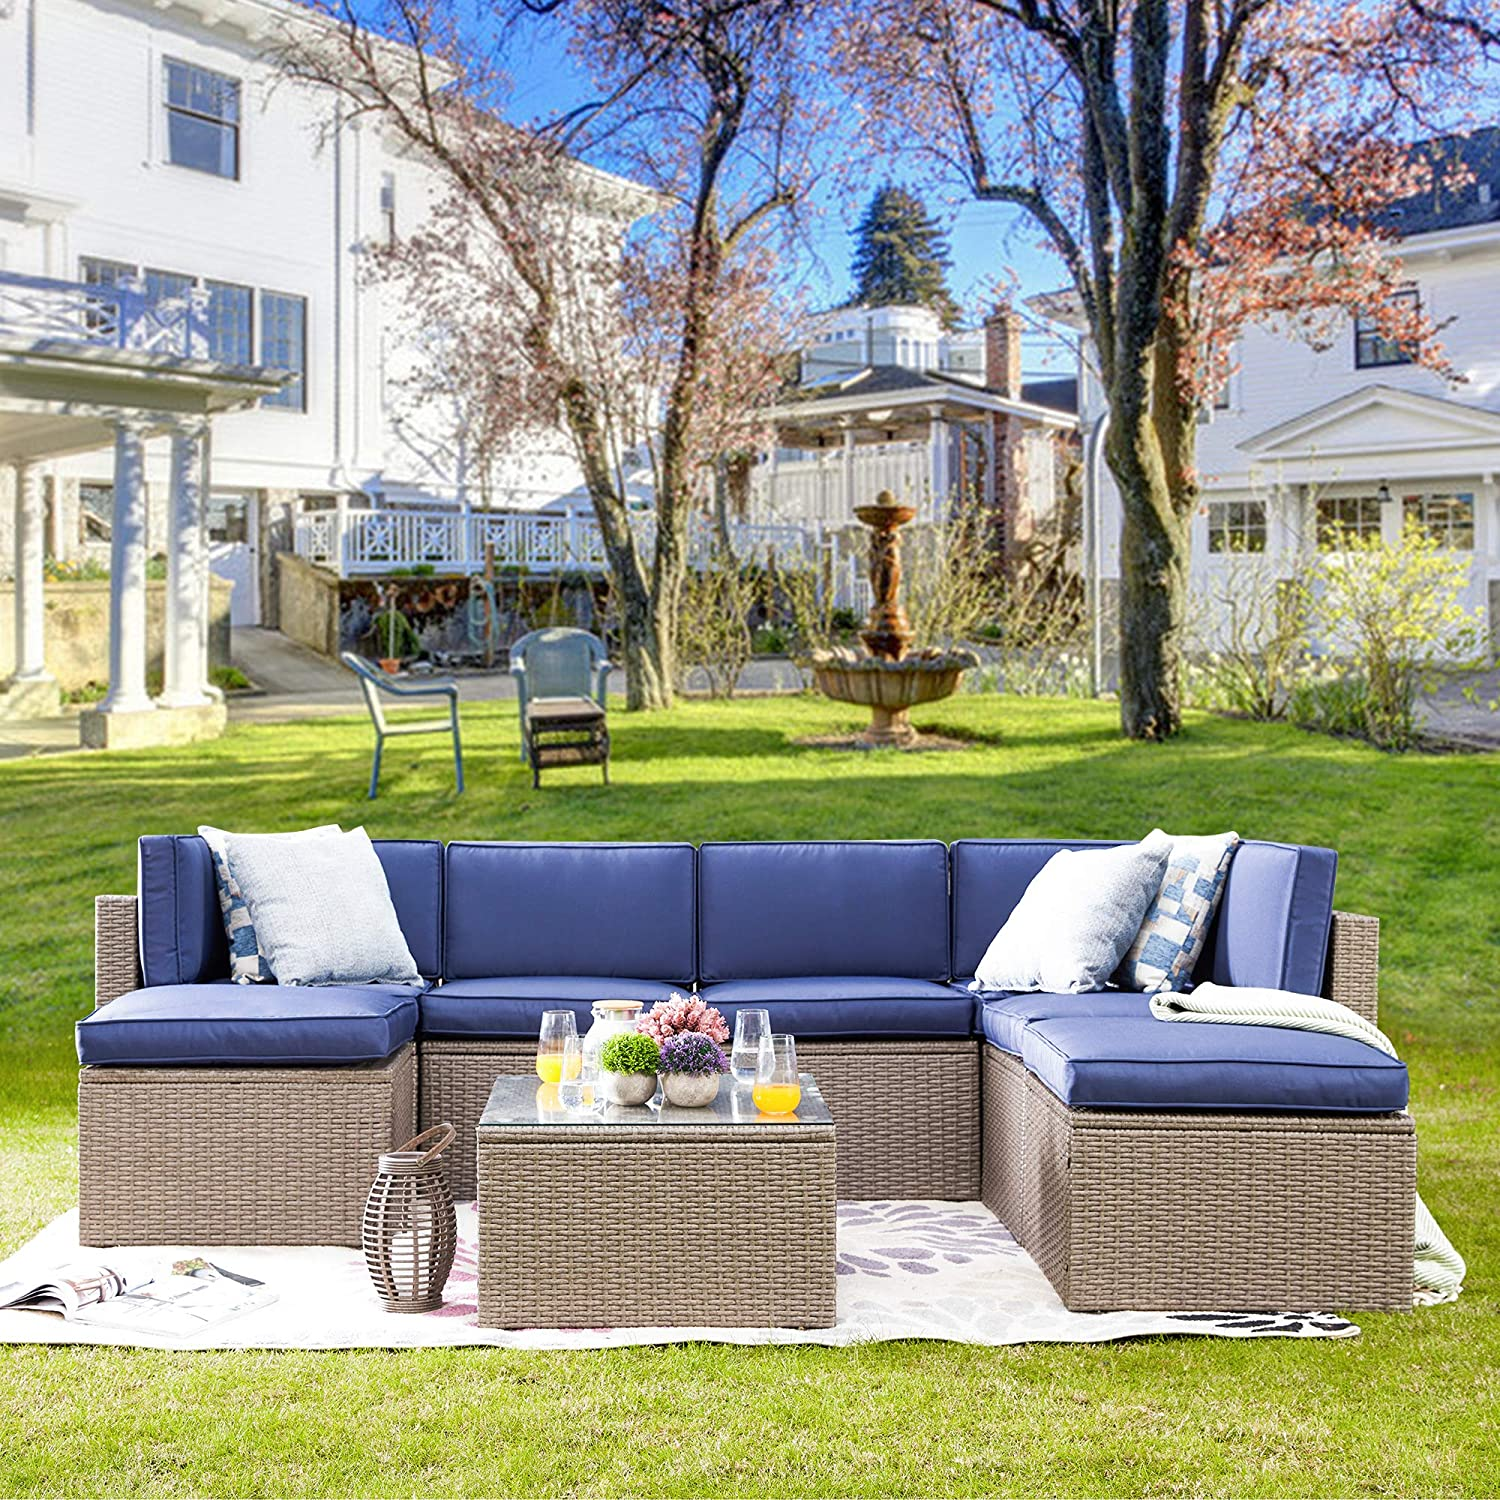 Amazon Com Lokatse Home 8 Piece Outdoor Sectional Rattan Sofa Sets Patio Wicker Furniture Conversation Set With Soft Cushions And Ottomans Blue Garden Outdoor